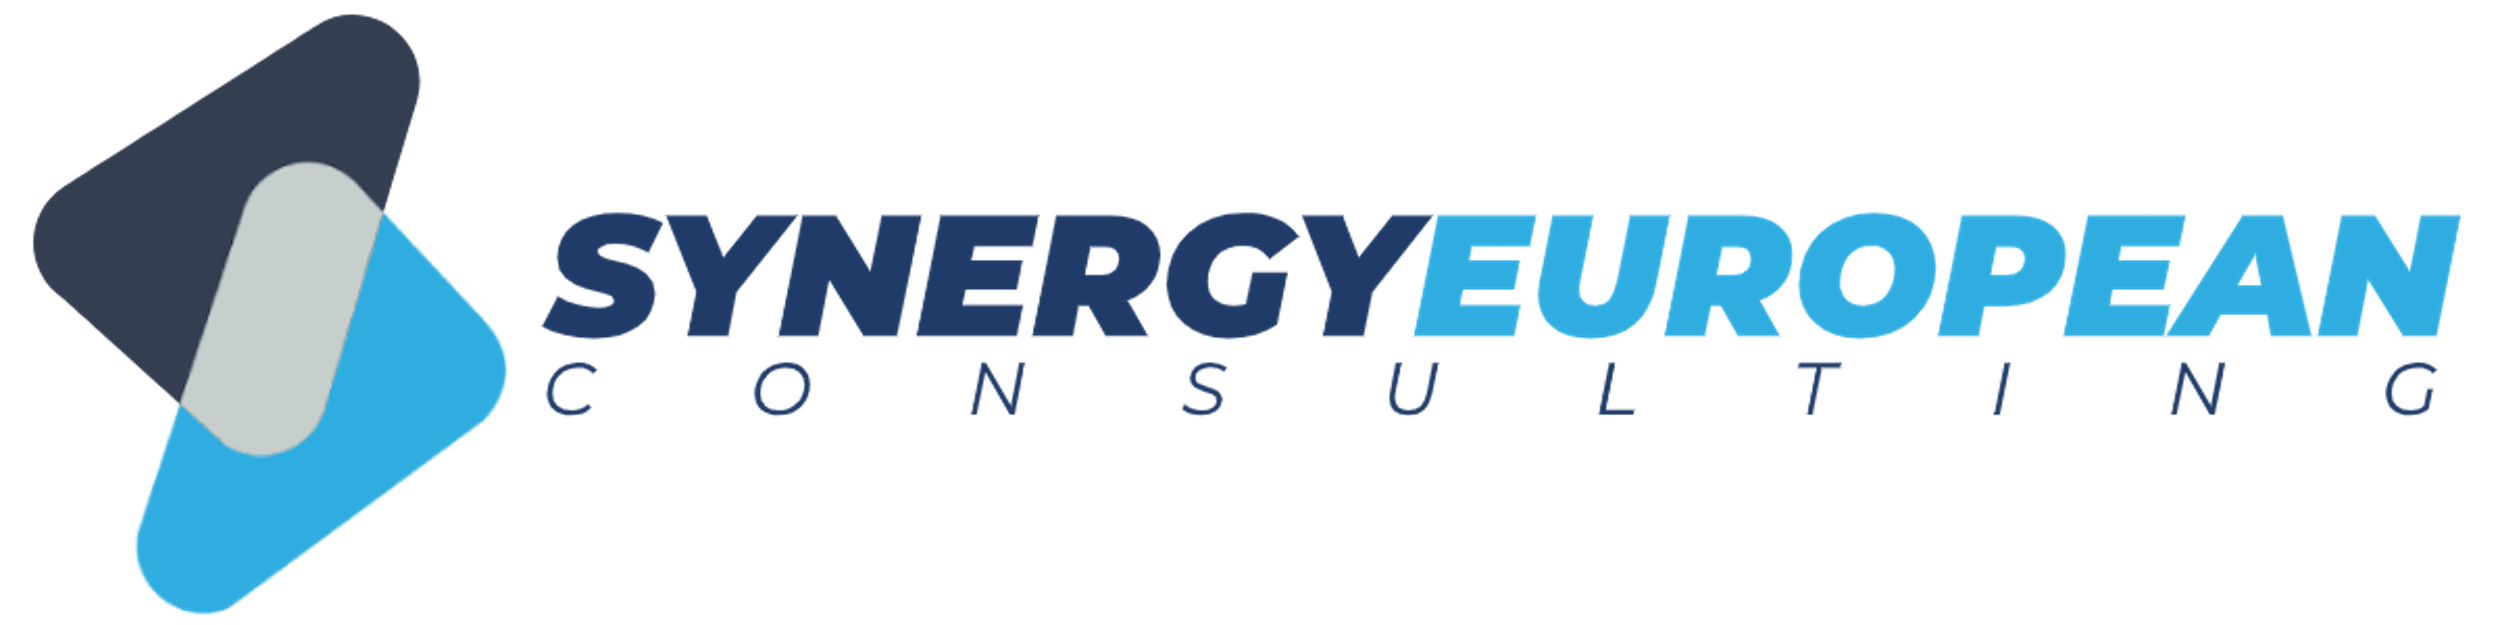 Synergy European